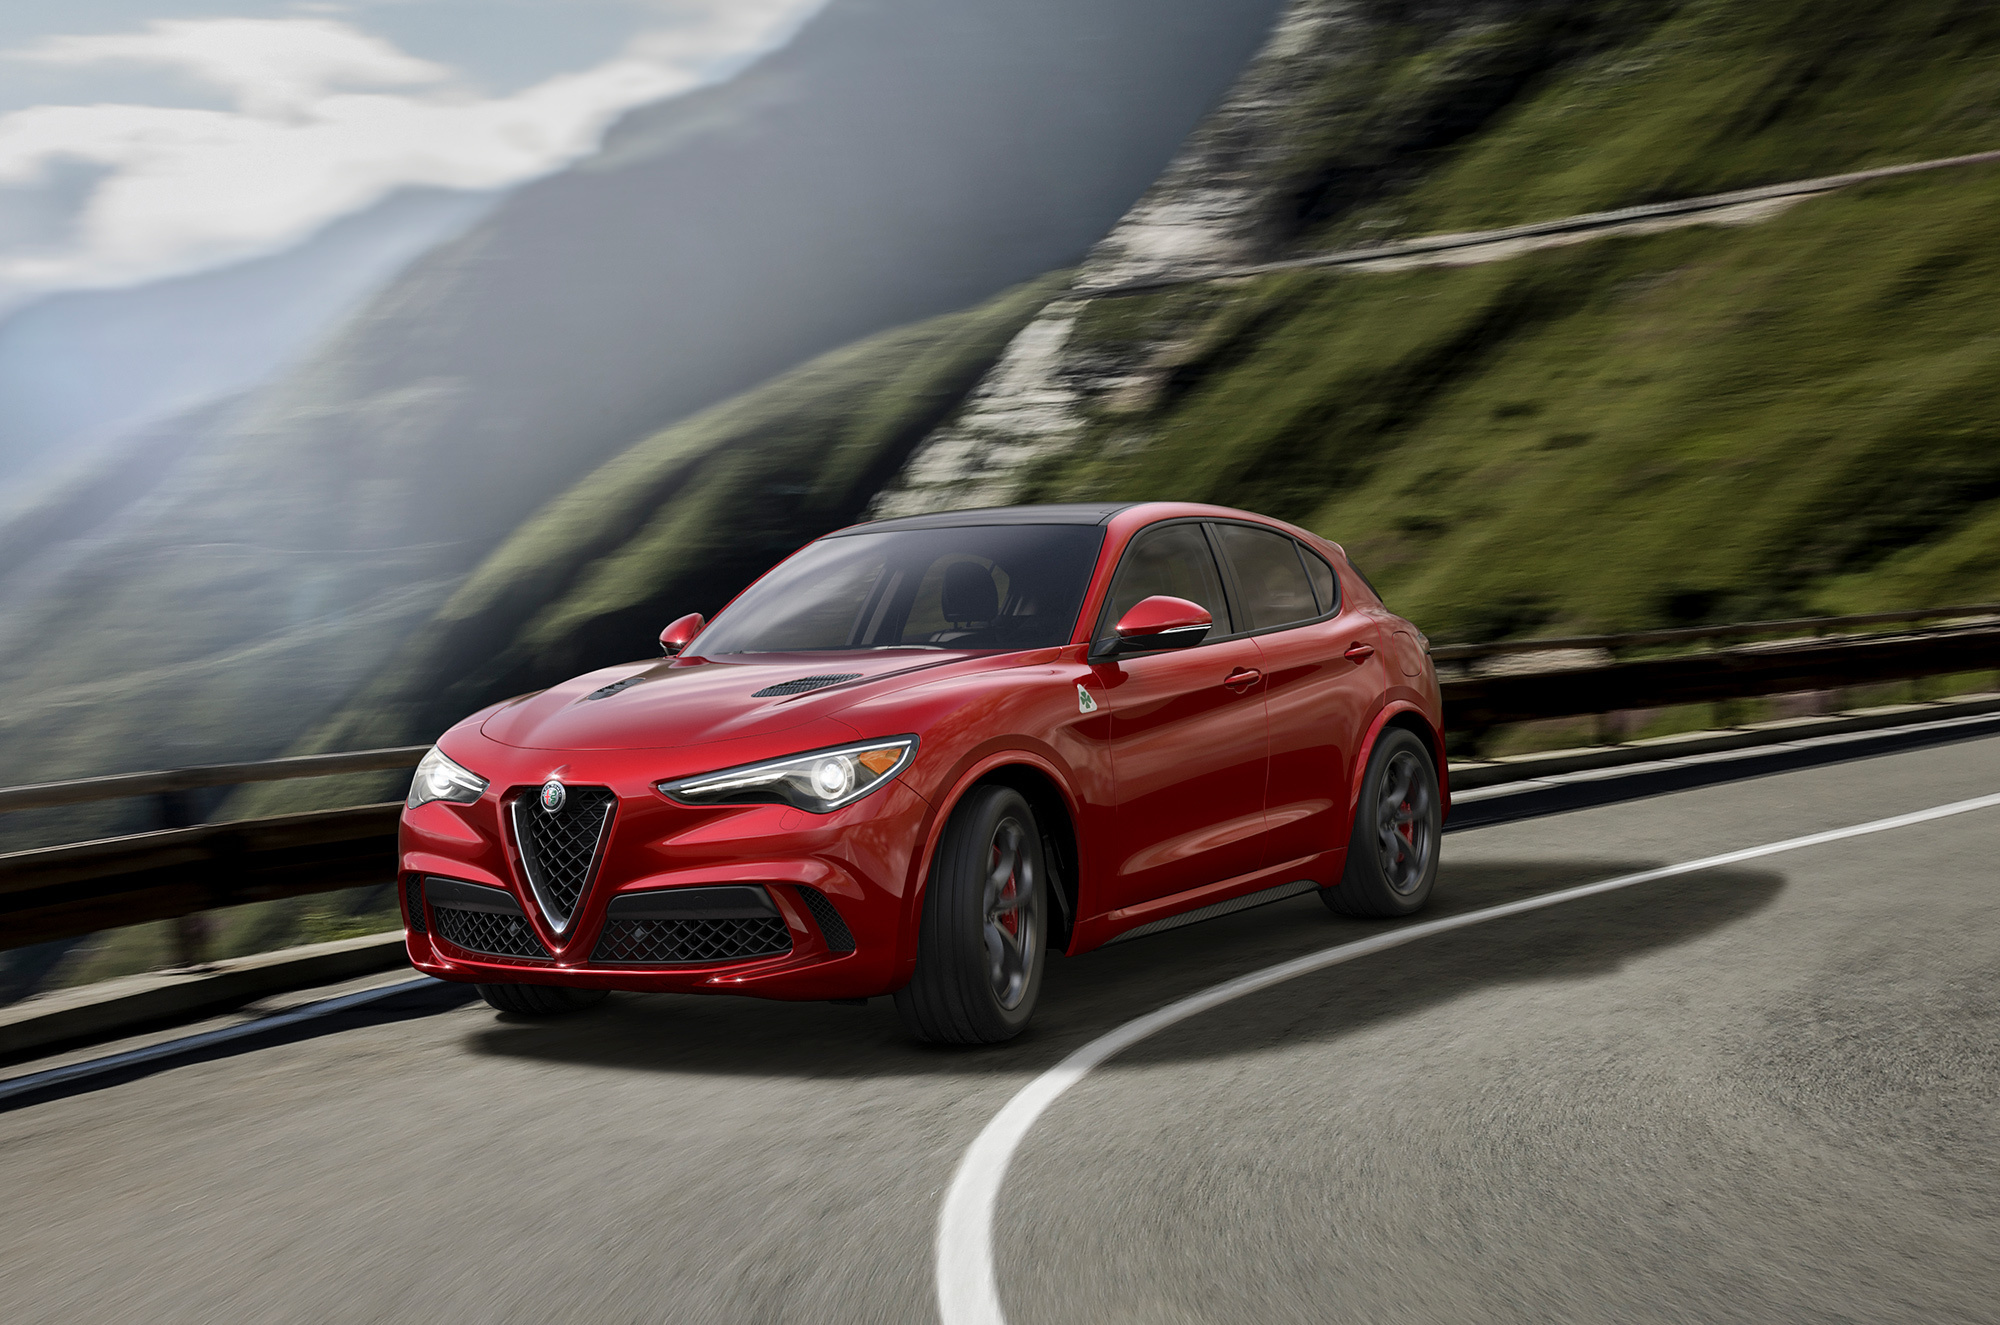 Alfa-Romeo-Stelvio-Wallpaper-for-Laptop.jpg